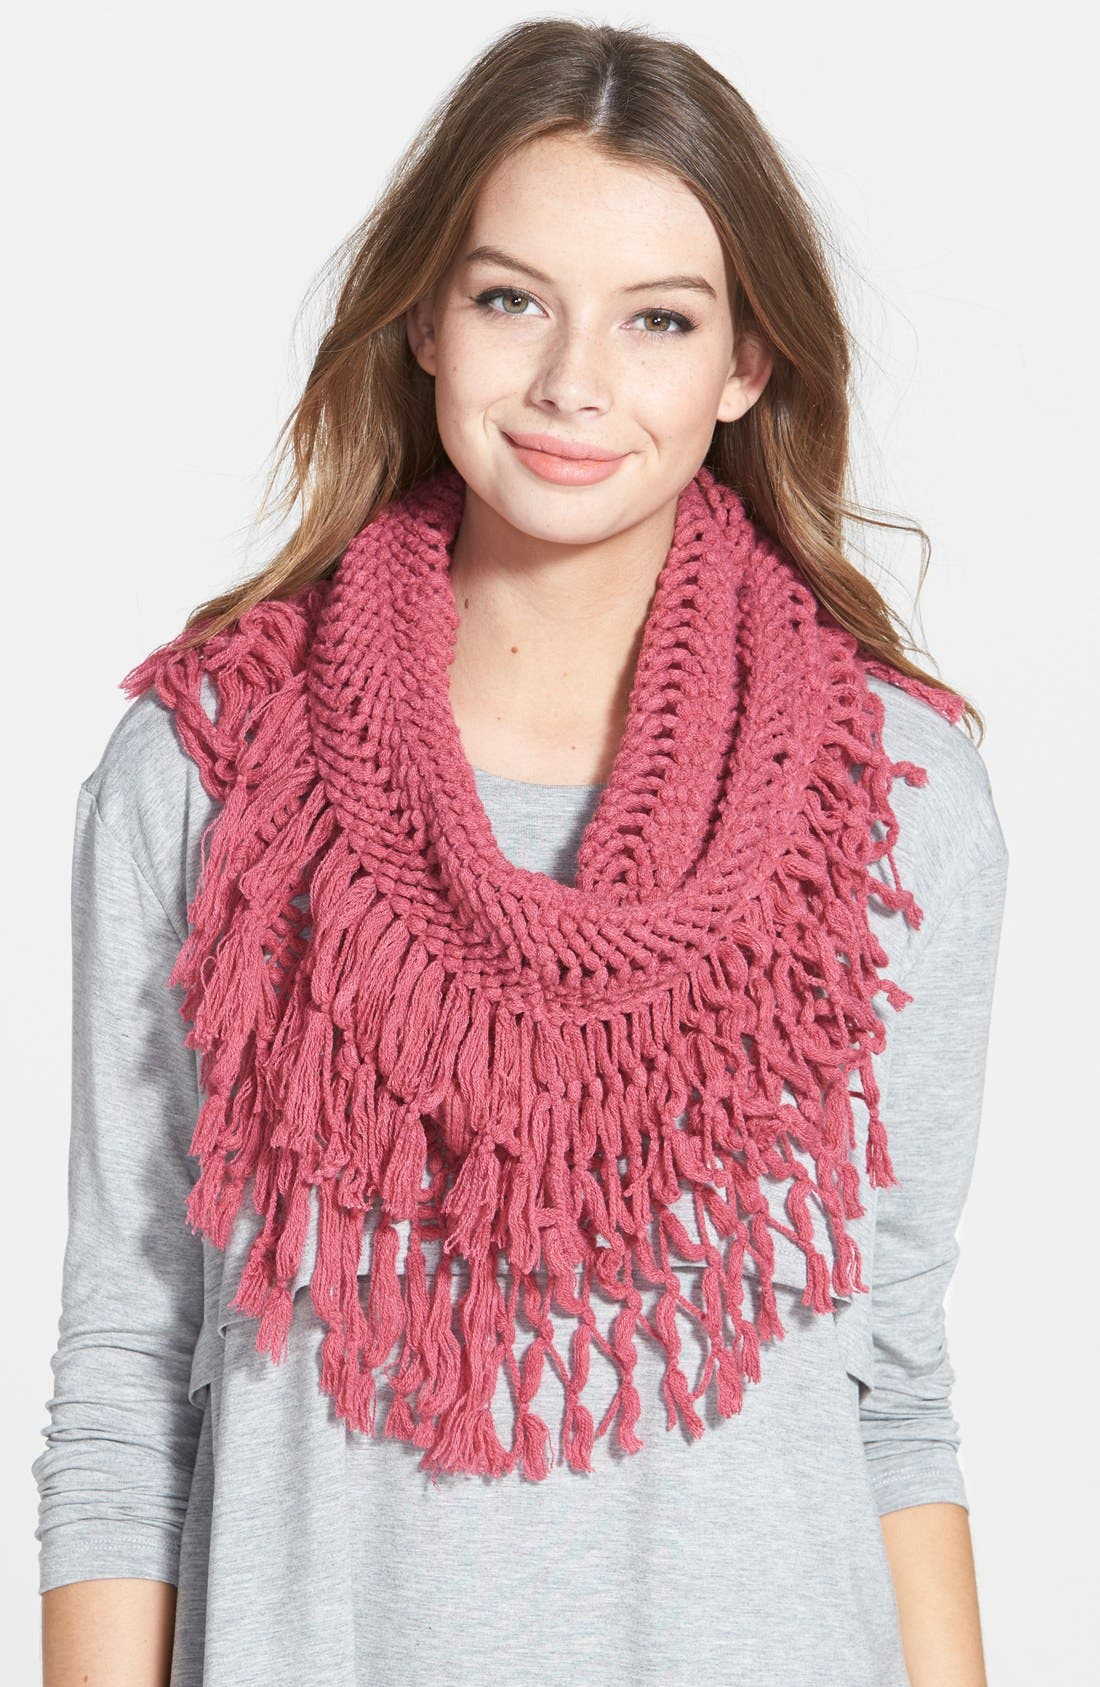 Alternate Image 1 Selected - BP. Knotted Fringe Knit Infinity Scarf